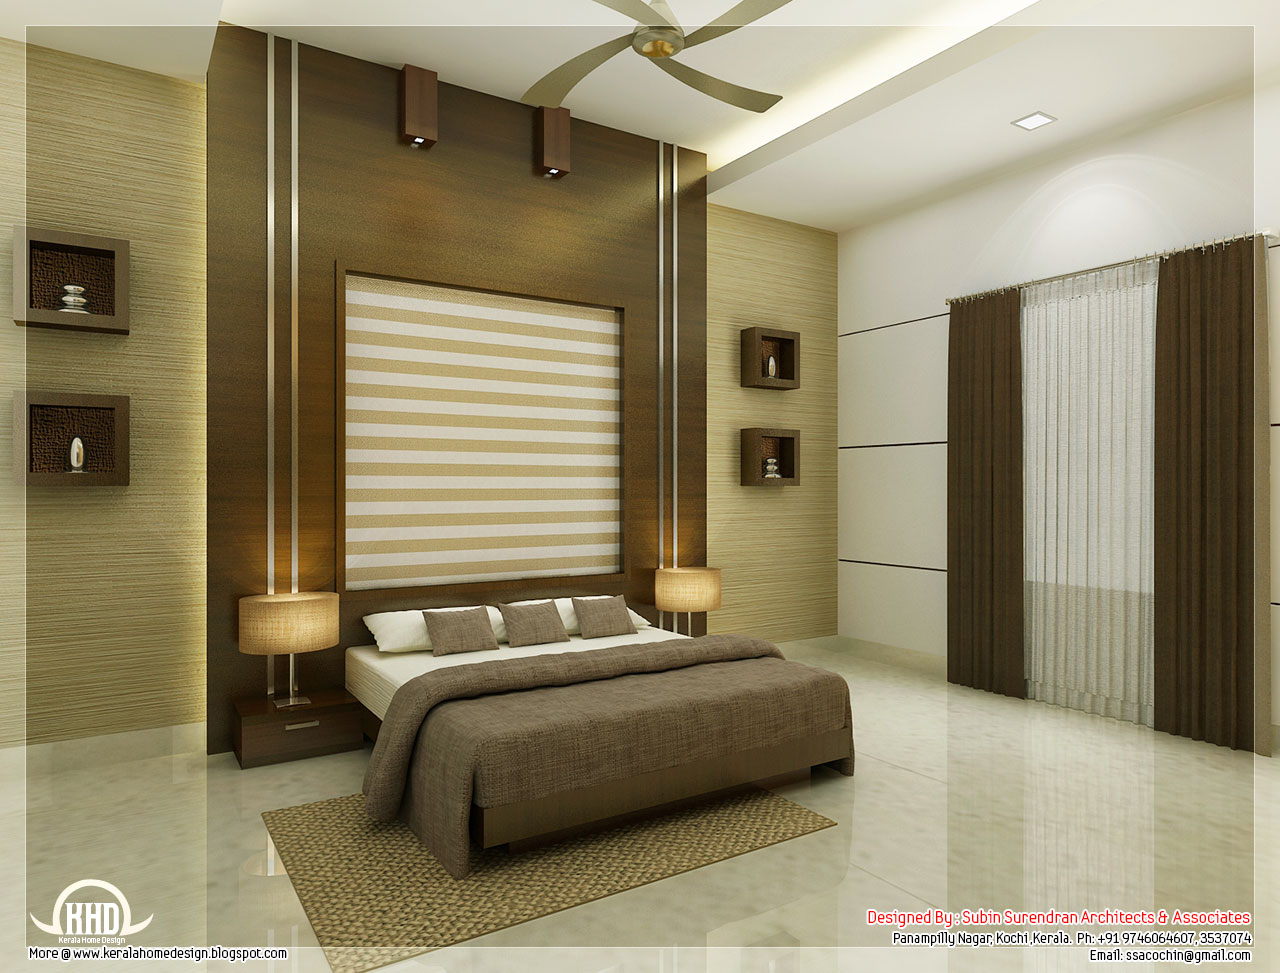 Beautiful bedroom interior designs kerala home design for Bedroom interior designs green